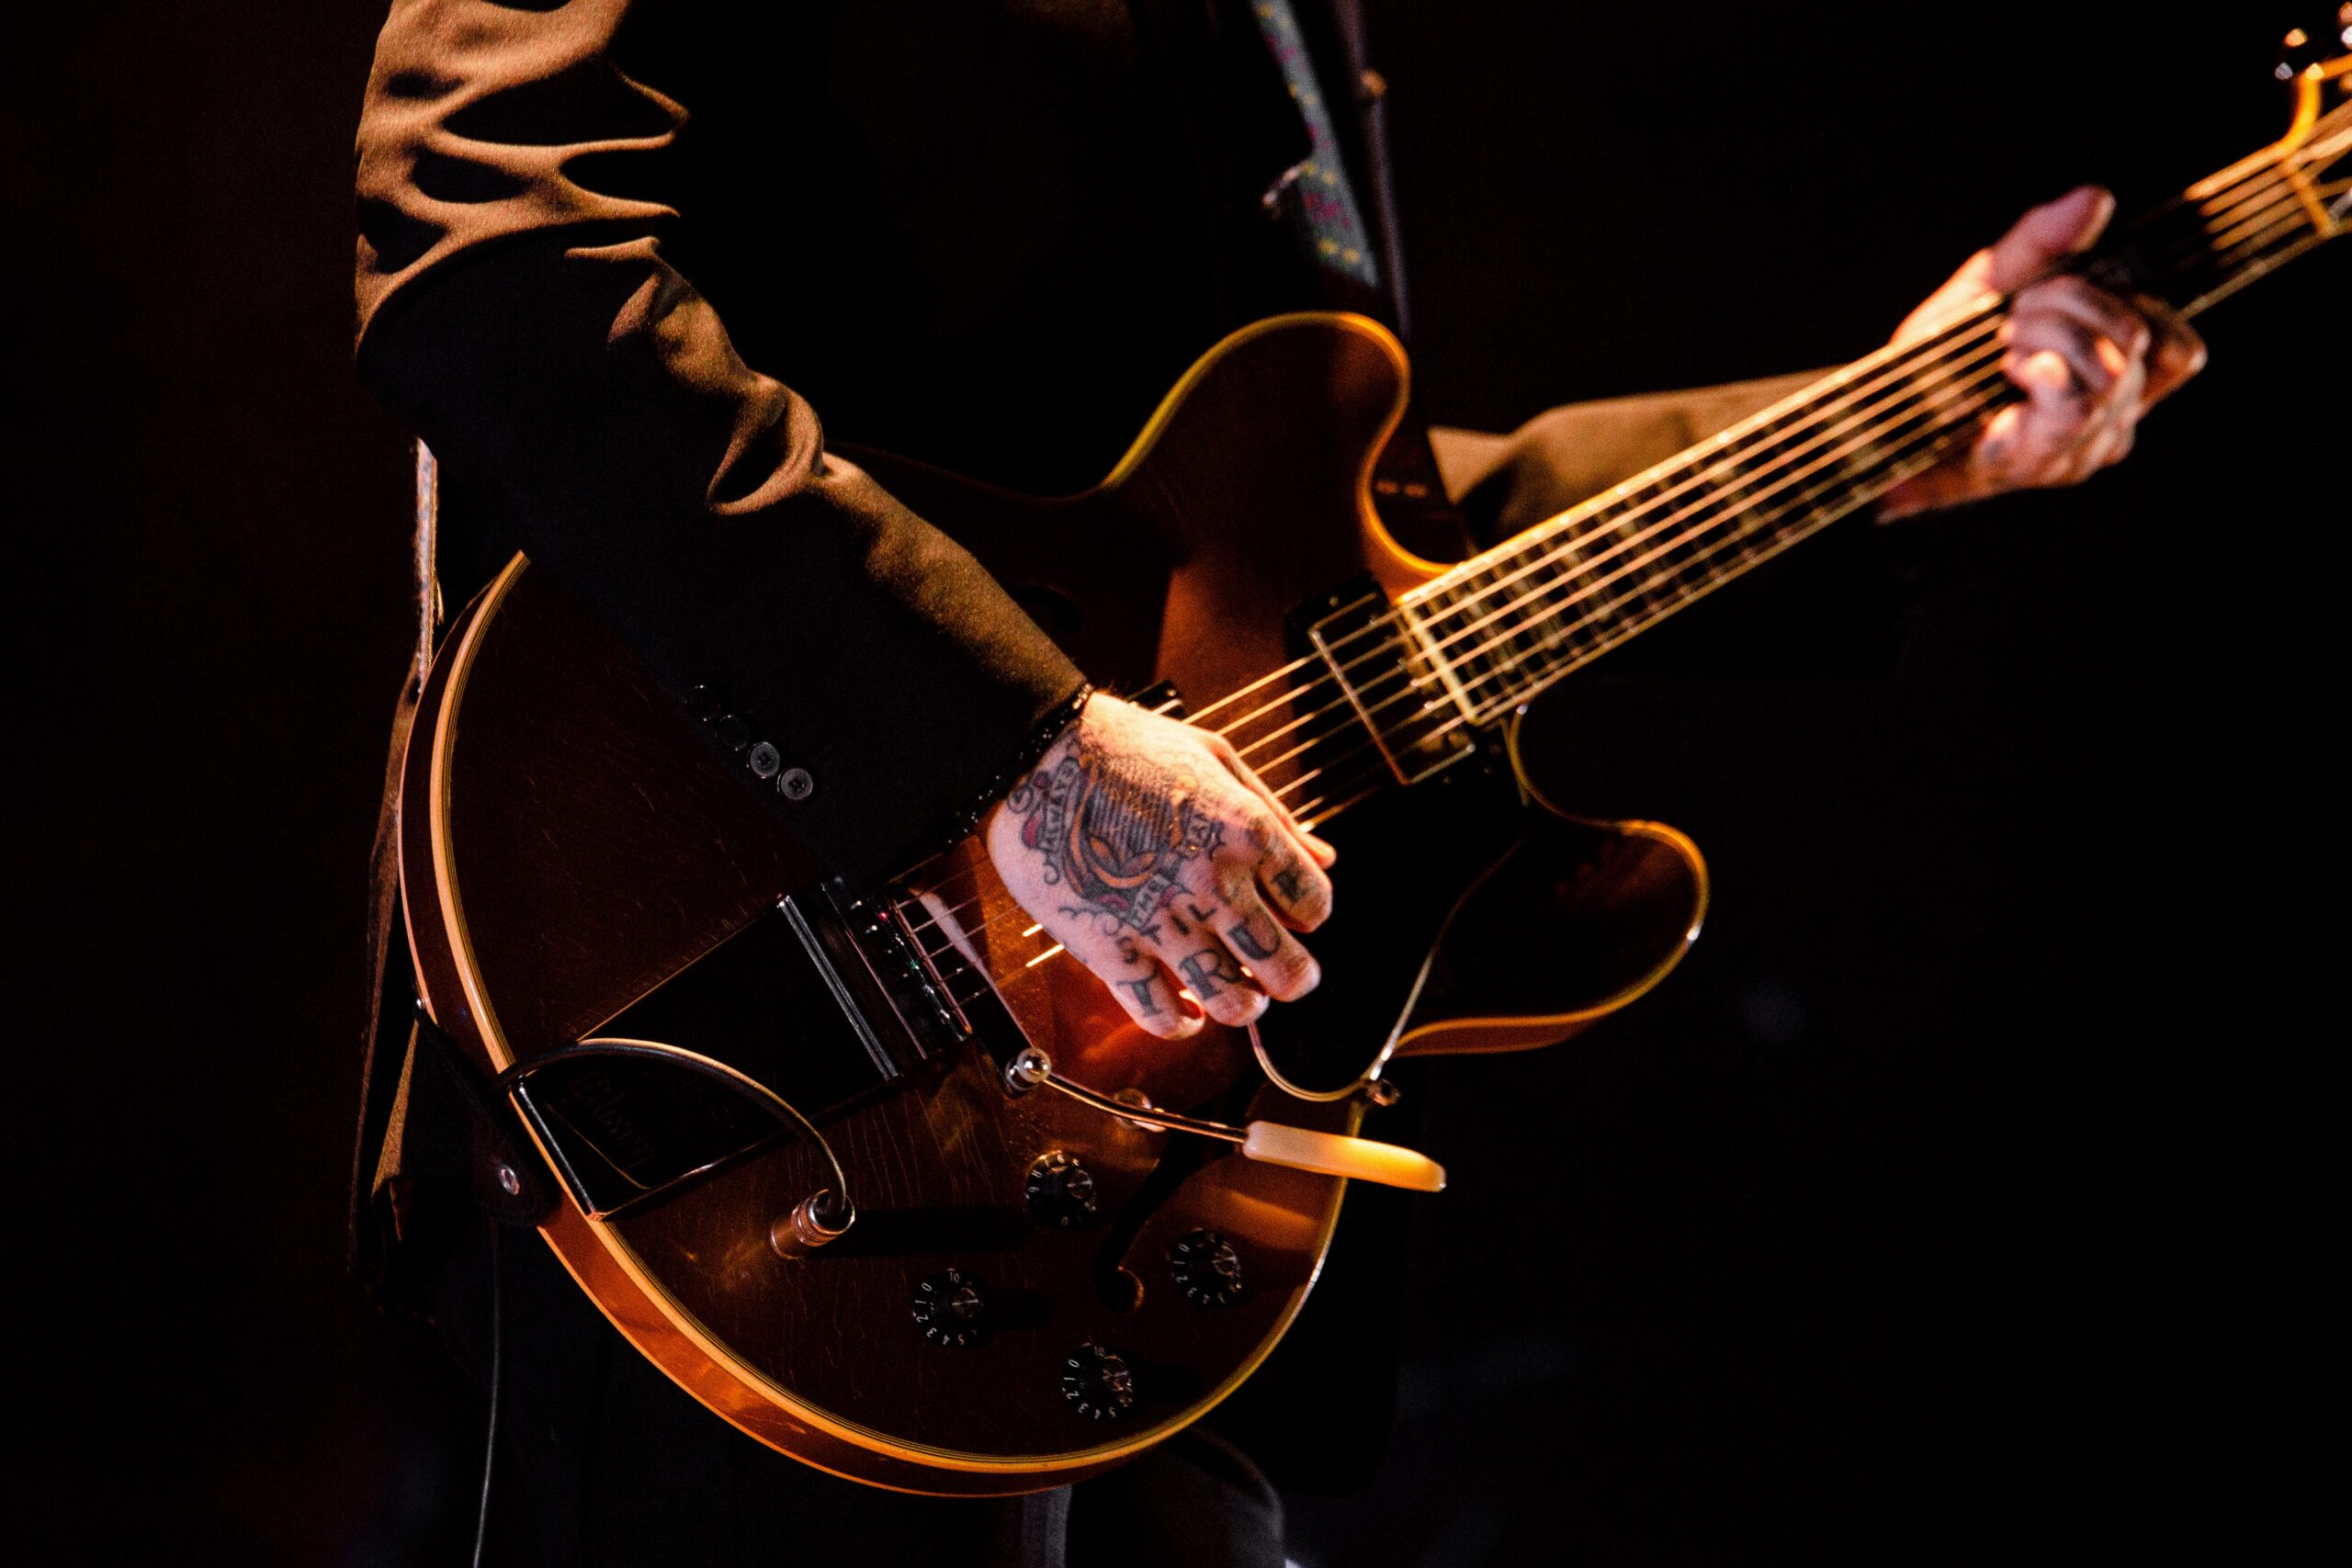 Person Playing Guitar | Top 9 Milestones To Shoot For When Learning To Play Guitar